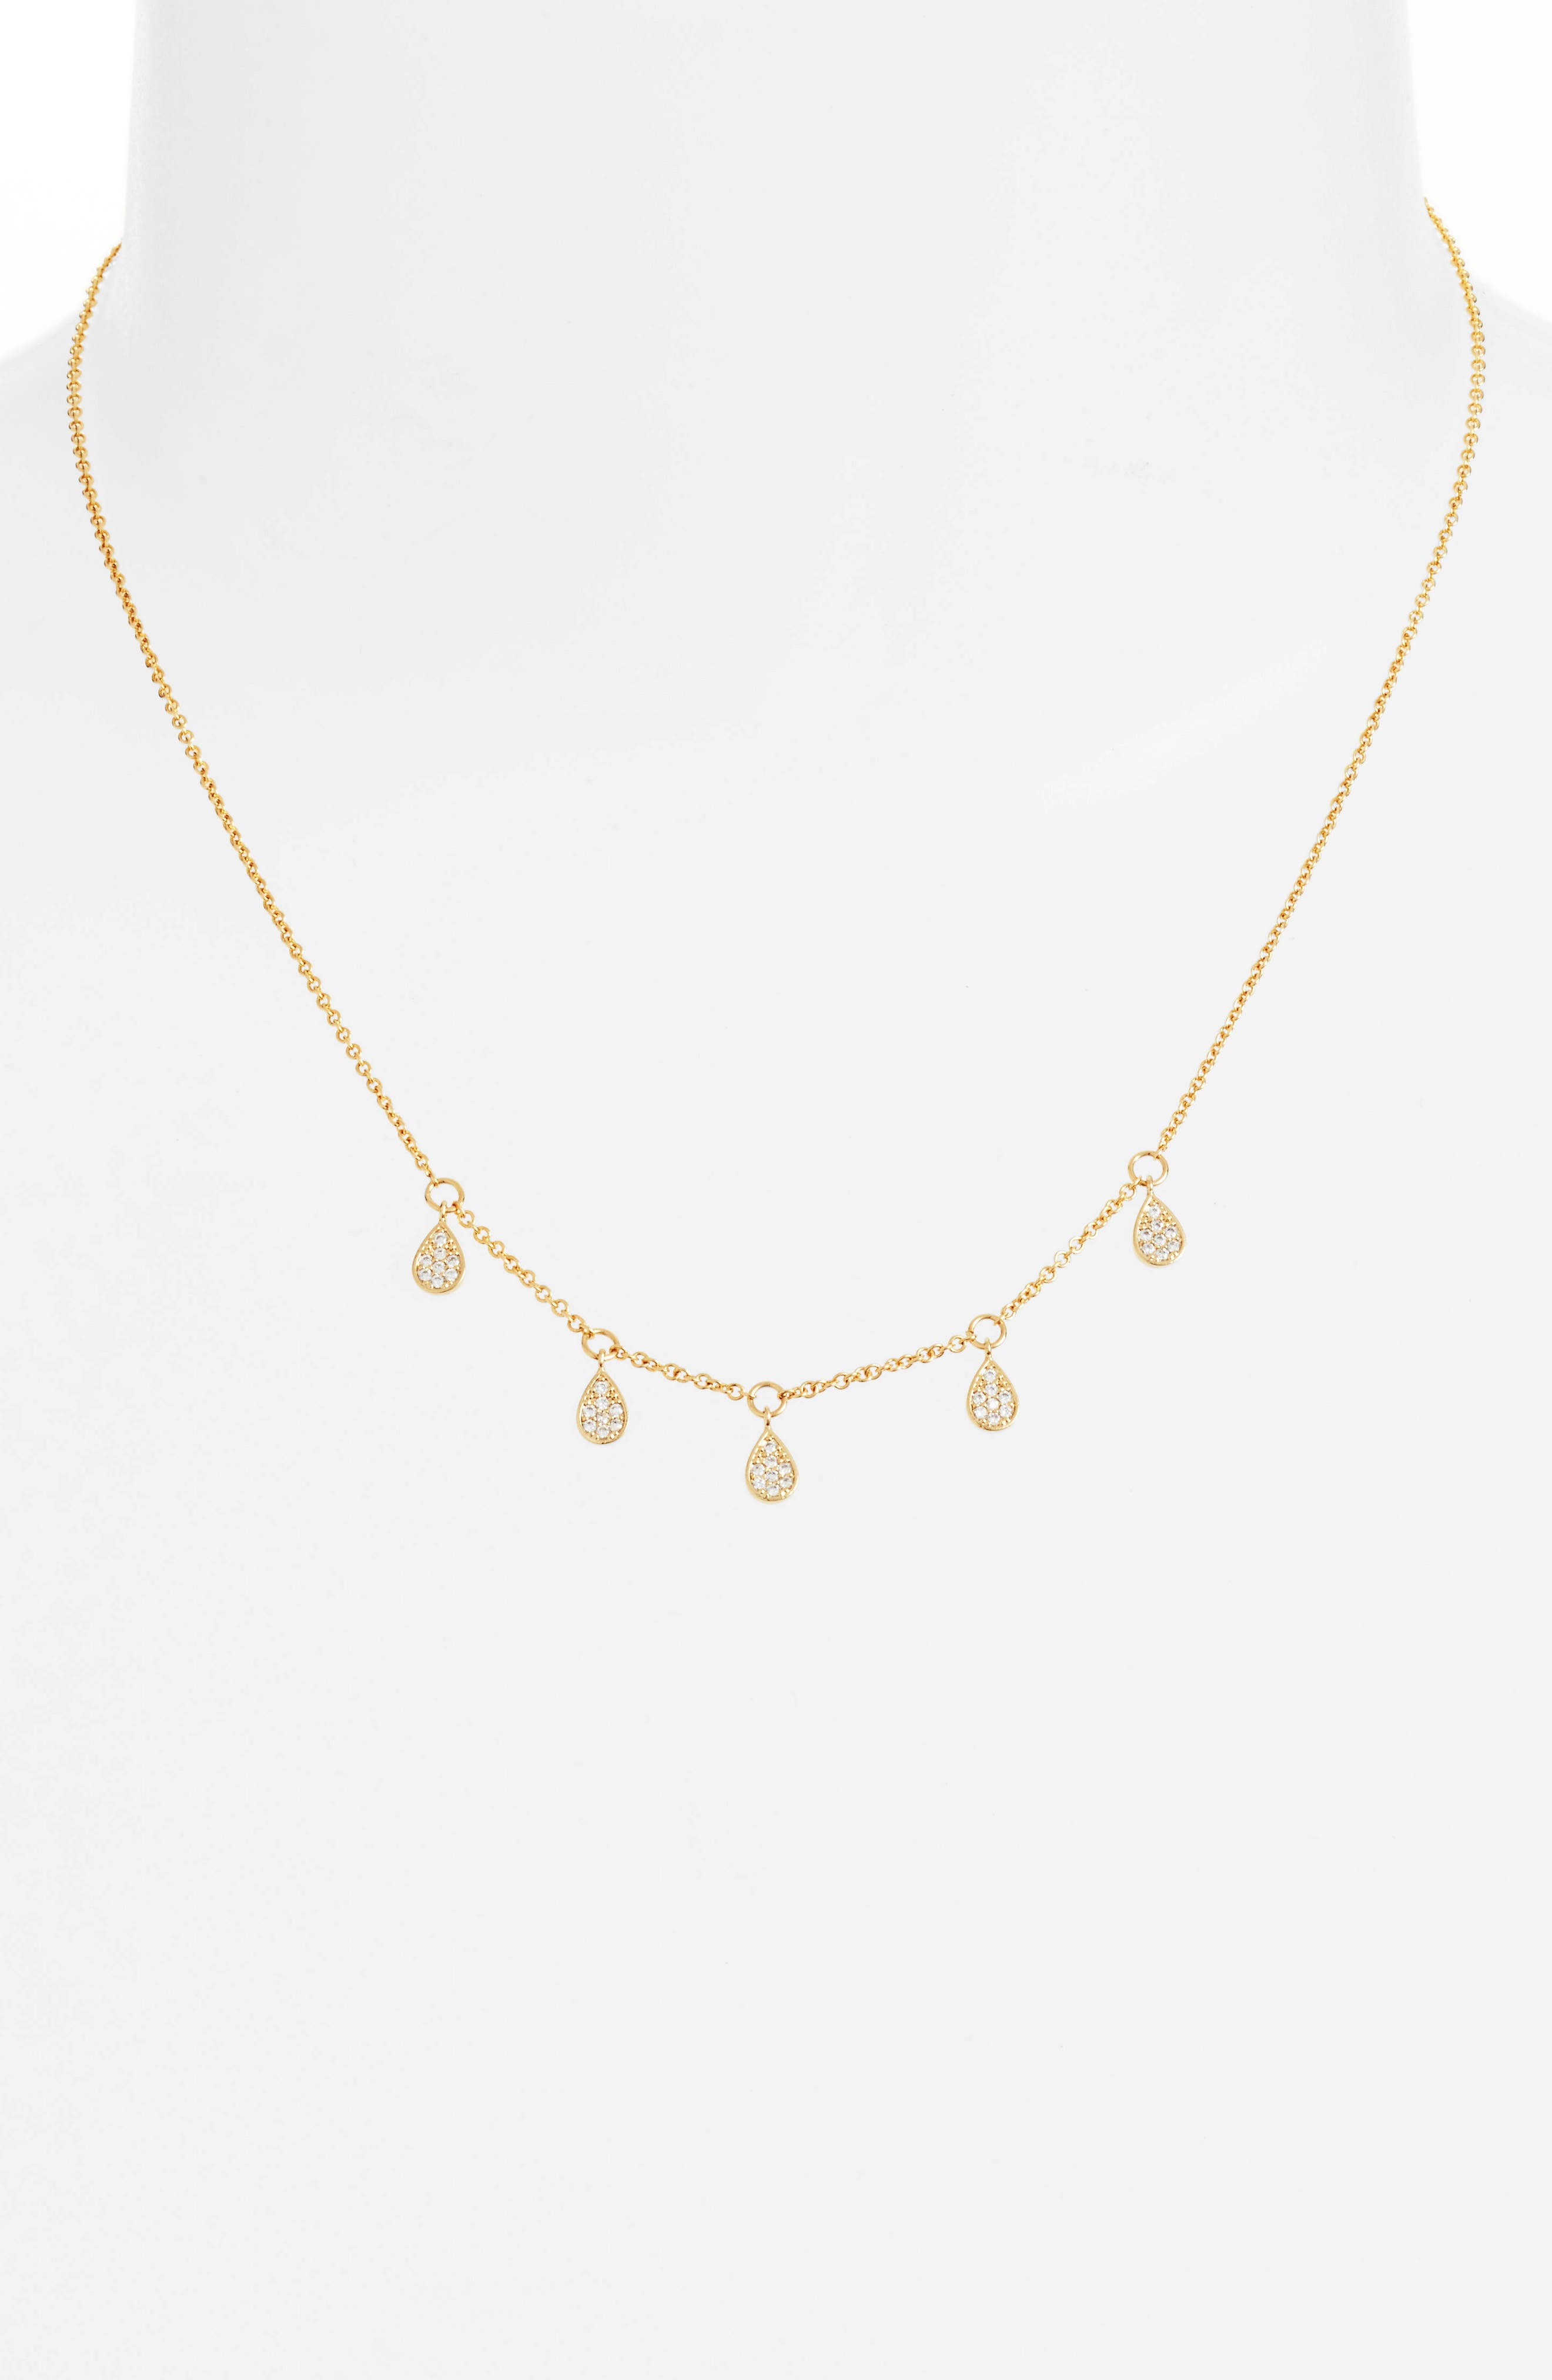 Dewdrop Lariat Necklace,                             Main thumbnail 1, color,                             Gold